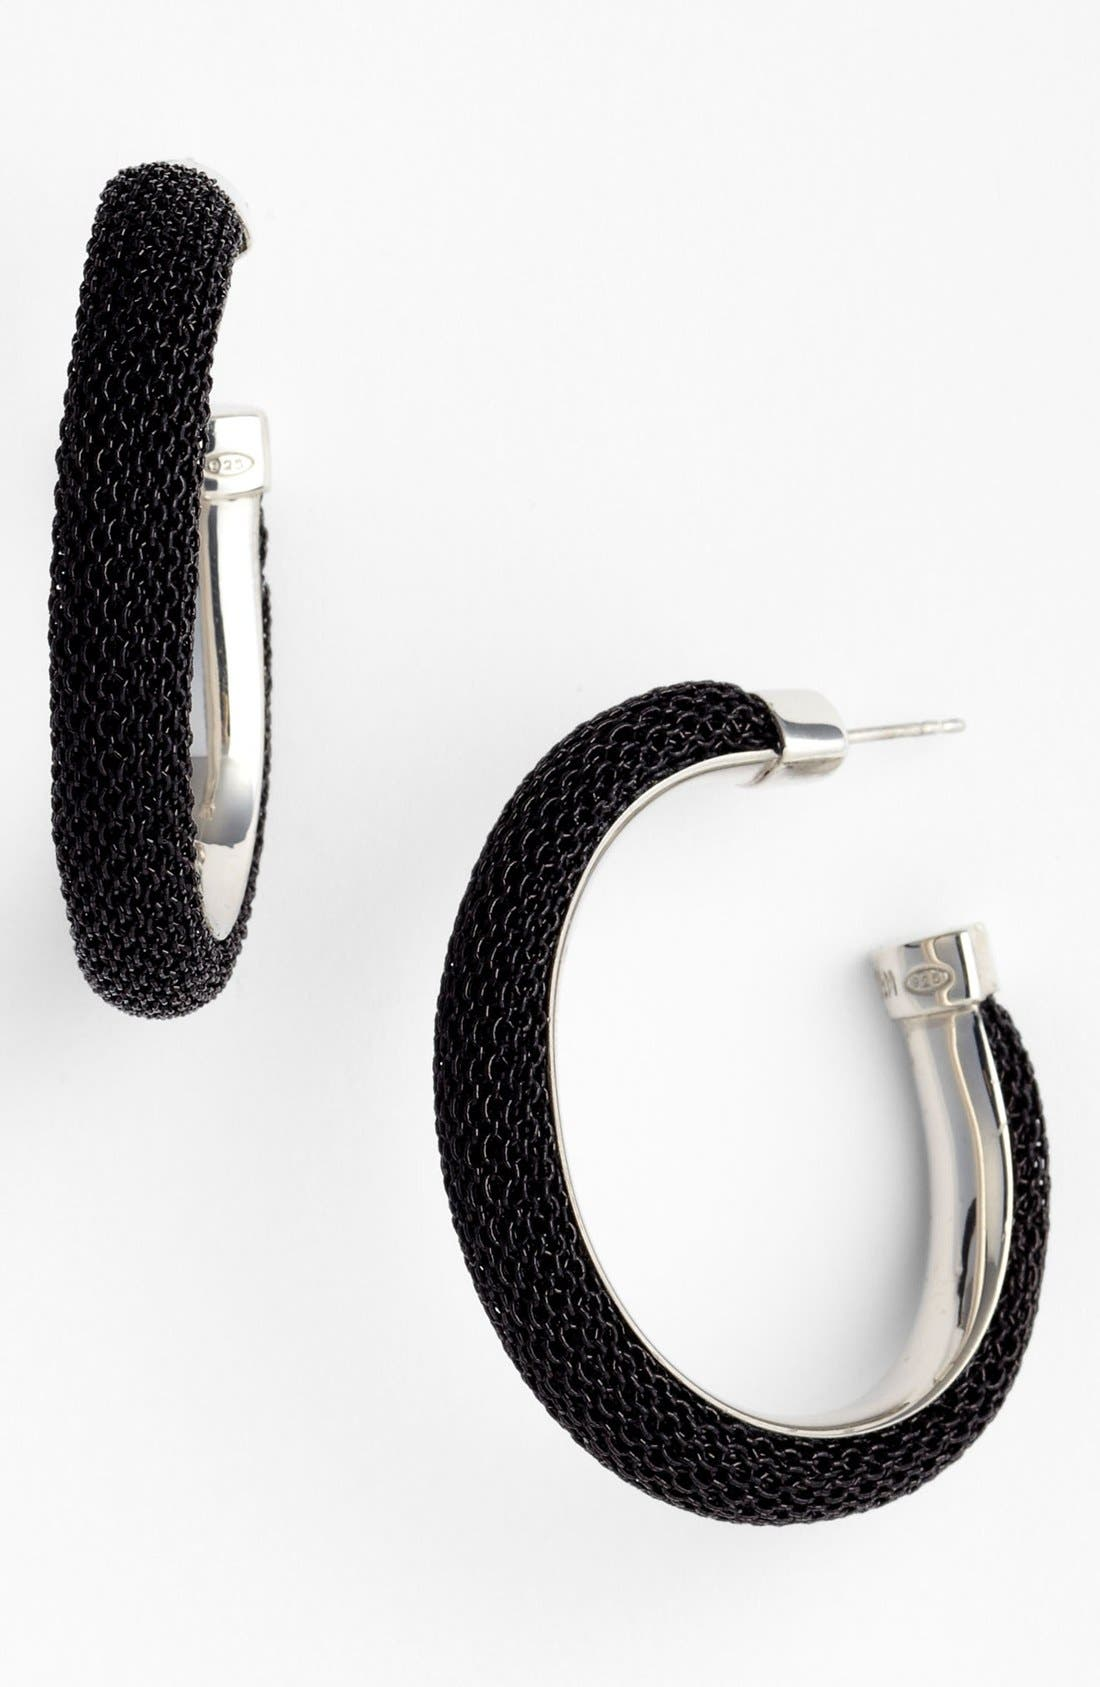 Alternate Image 1 Selected - Adami & Martucci 'Mesh' Oval Hoop Earrings (Nordstrom Exclusive)